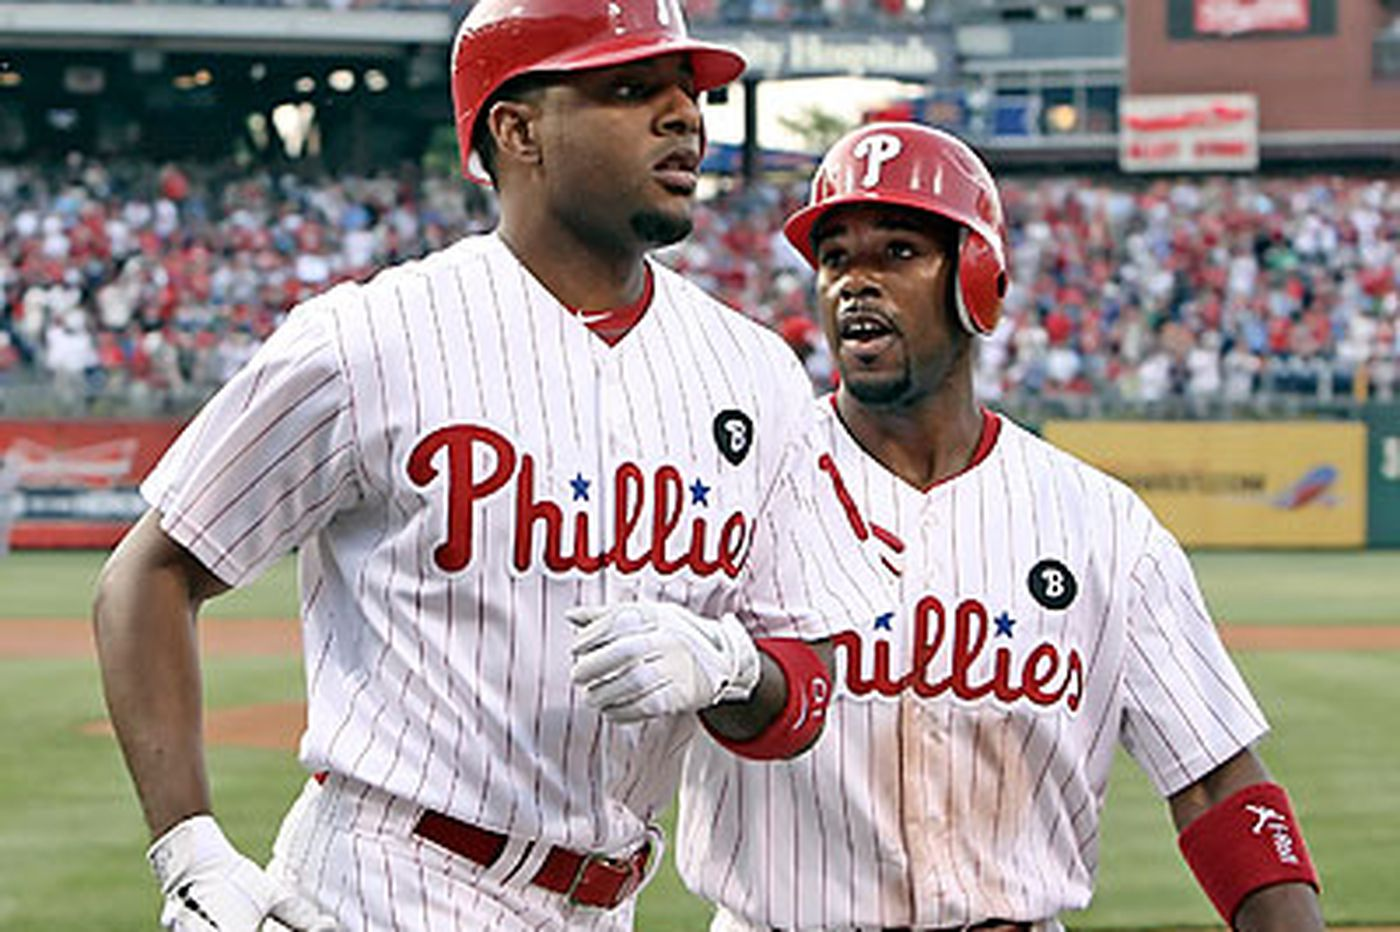 Phils prevail over Reds in 19 innings